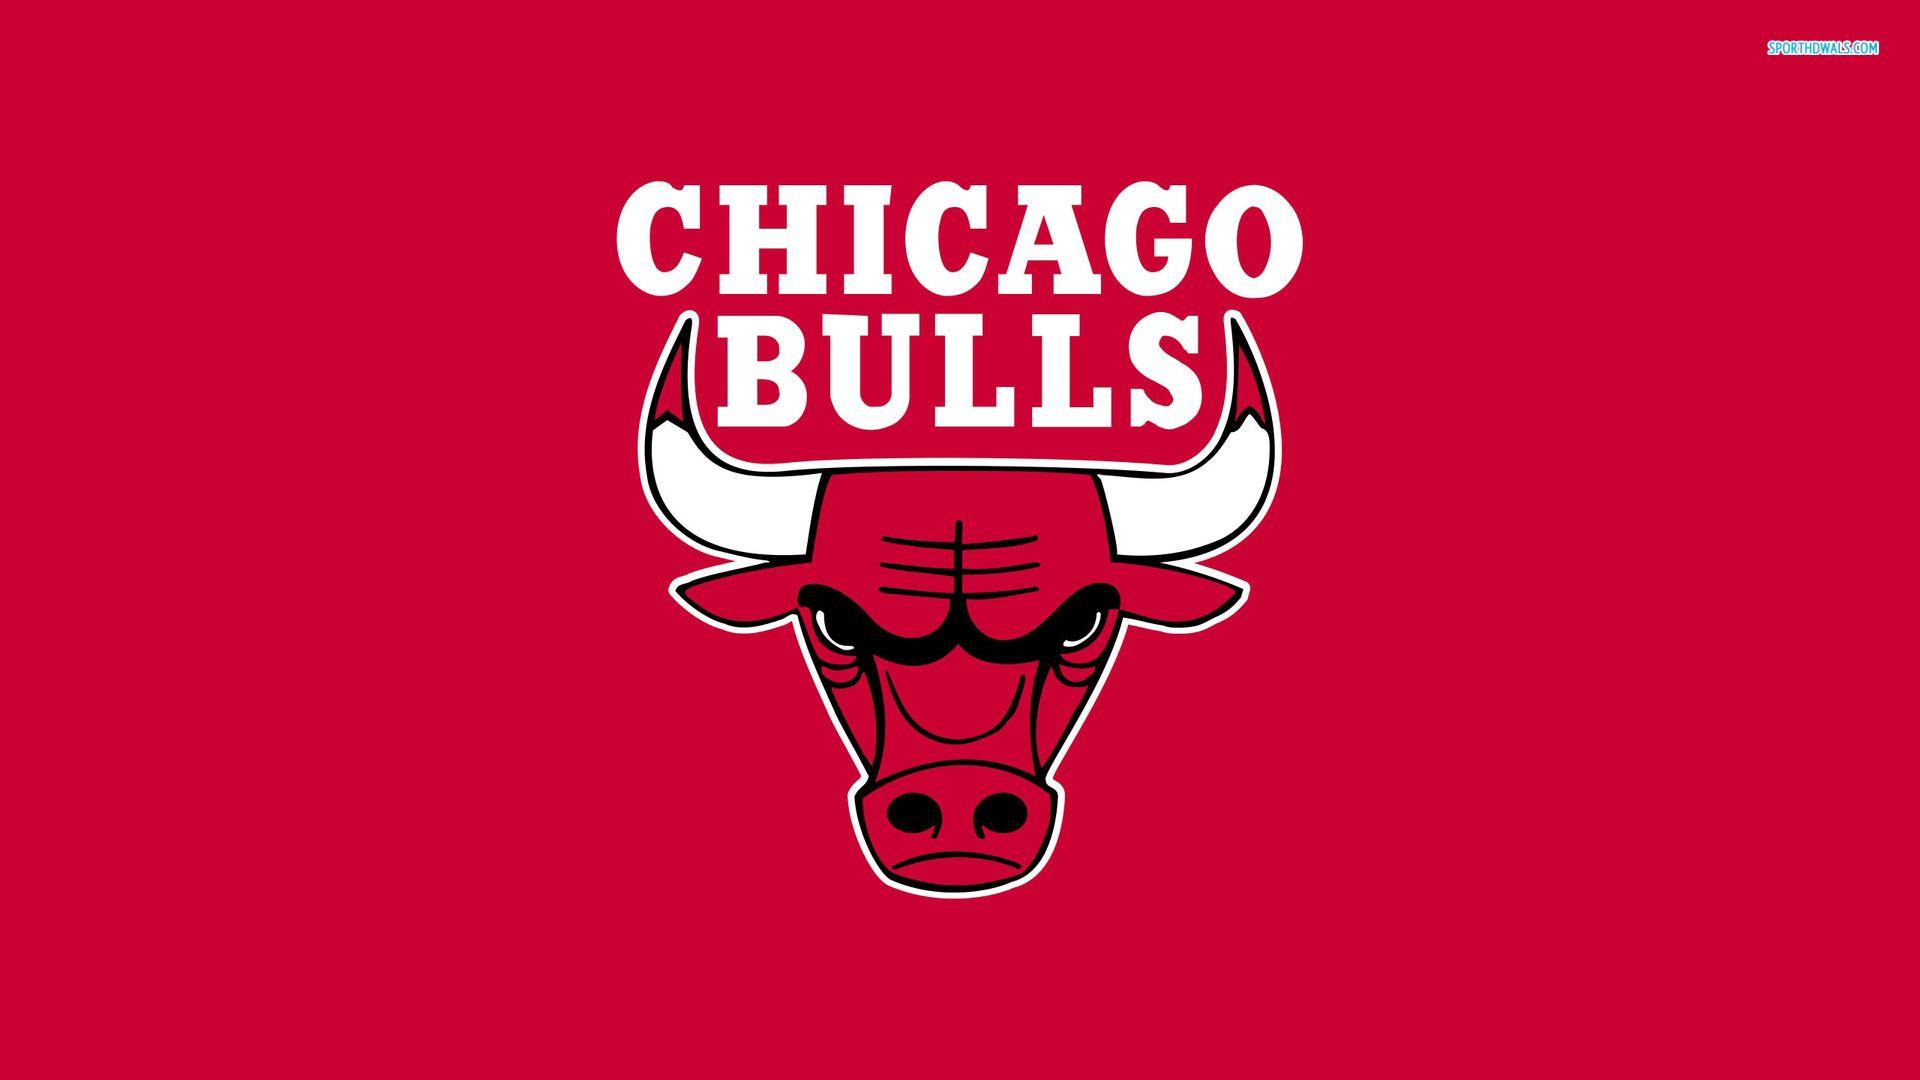 Chicago Bulls wallpapers | Chicago Bulls background - Page 17